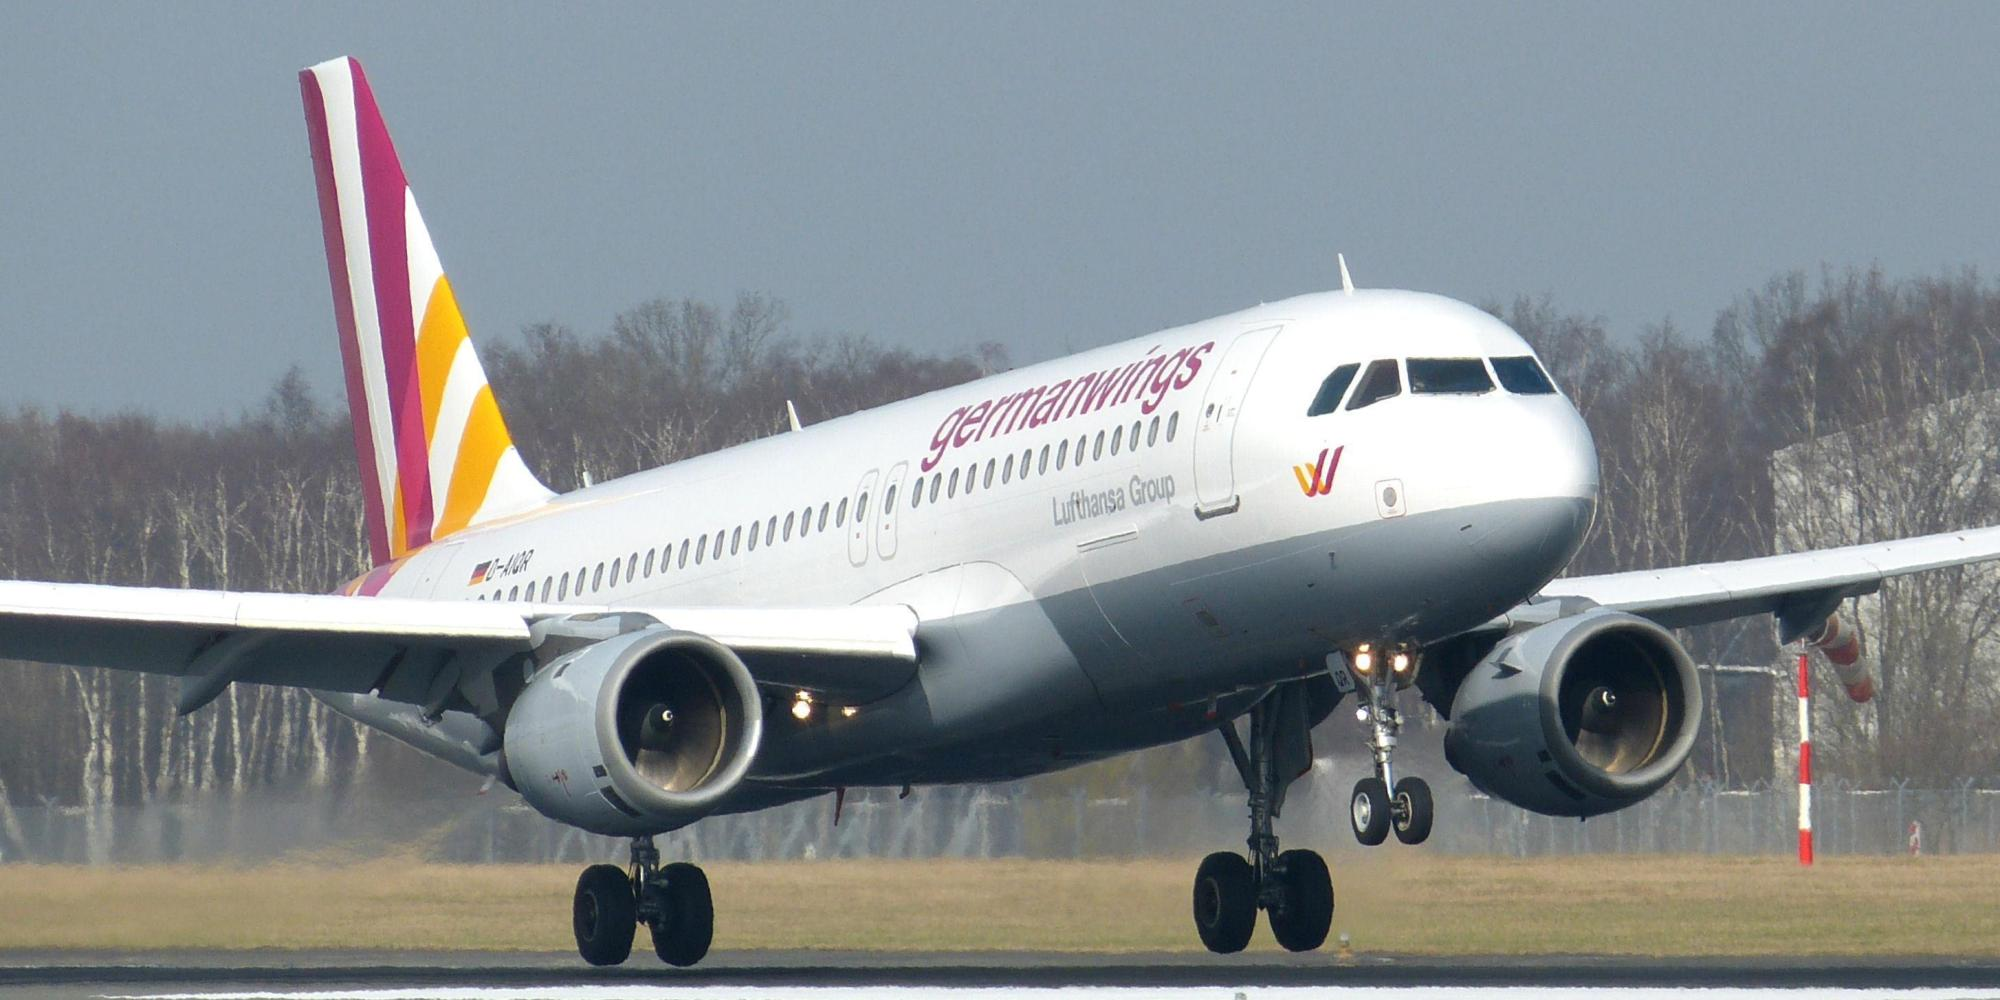 Germanwings devia aereo Bonn-Venezia, perde carburante